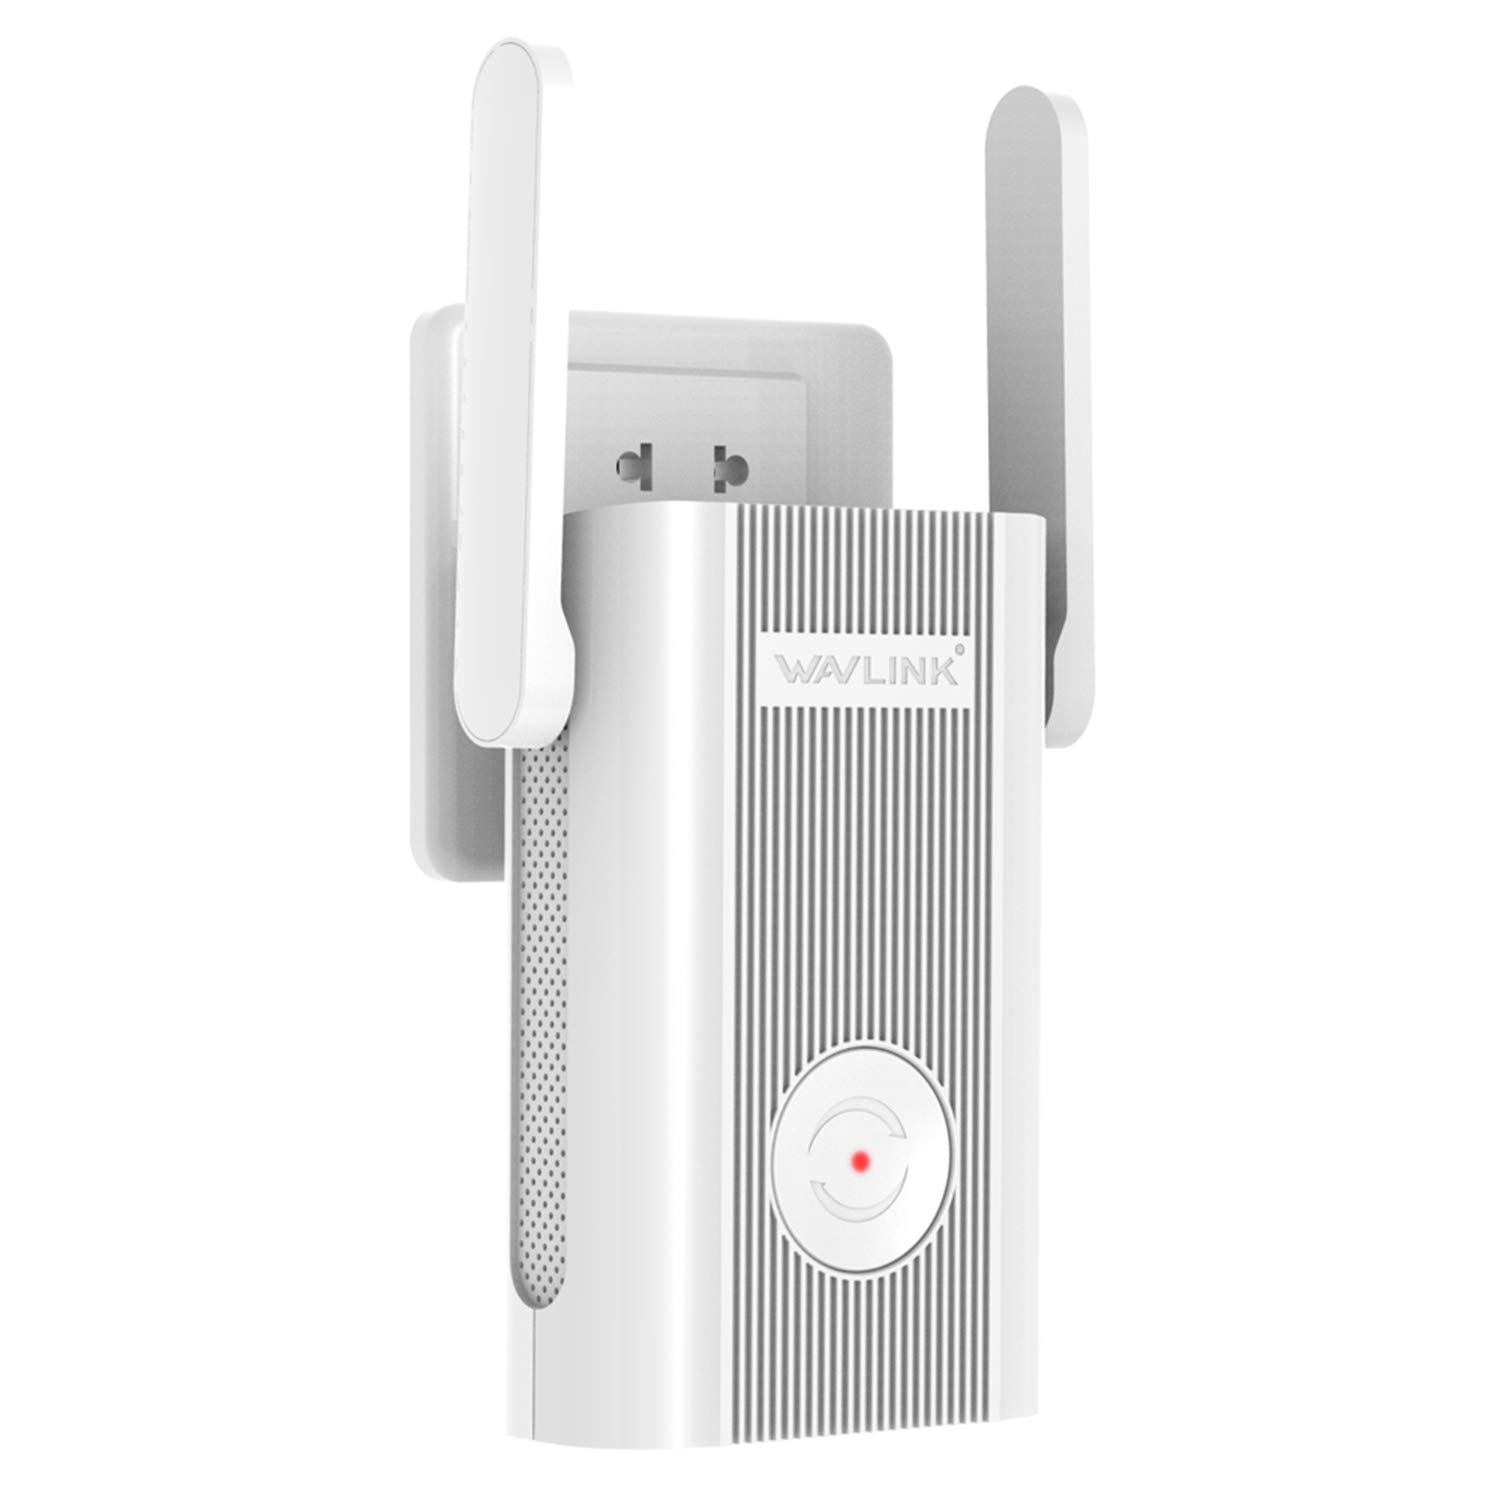 Aerial X 1200Mbps WiFi Extender Plug in Wall, WAVLINK AC1200 Dual Band 2.4 + 5Ghz WiFi Range Extender Wi-Fi Repeater Wireless Signal Booster/Wireless Access Point AP with Ethernet Port for Gaming